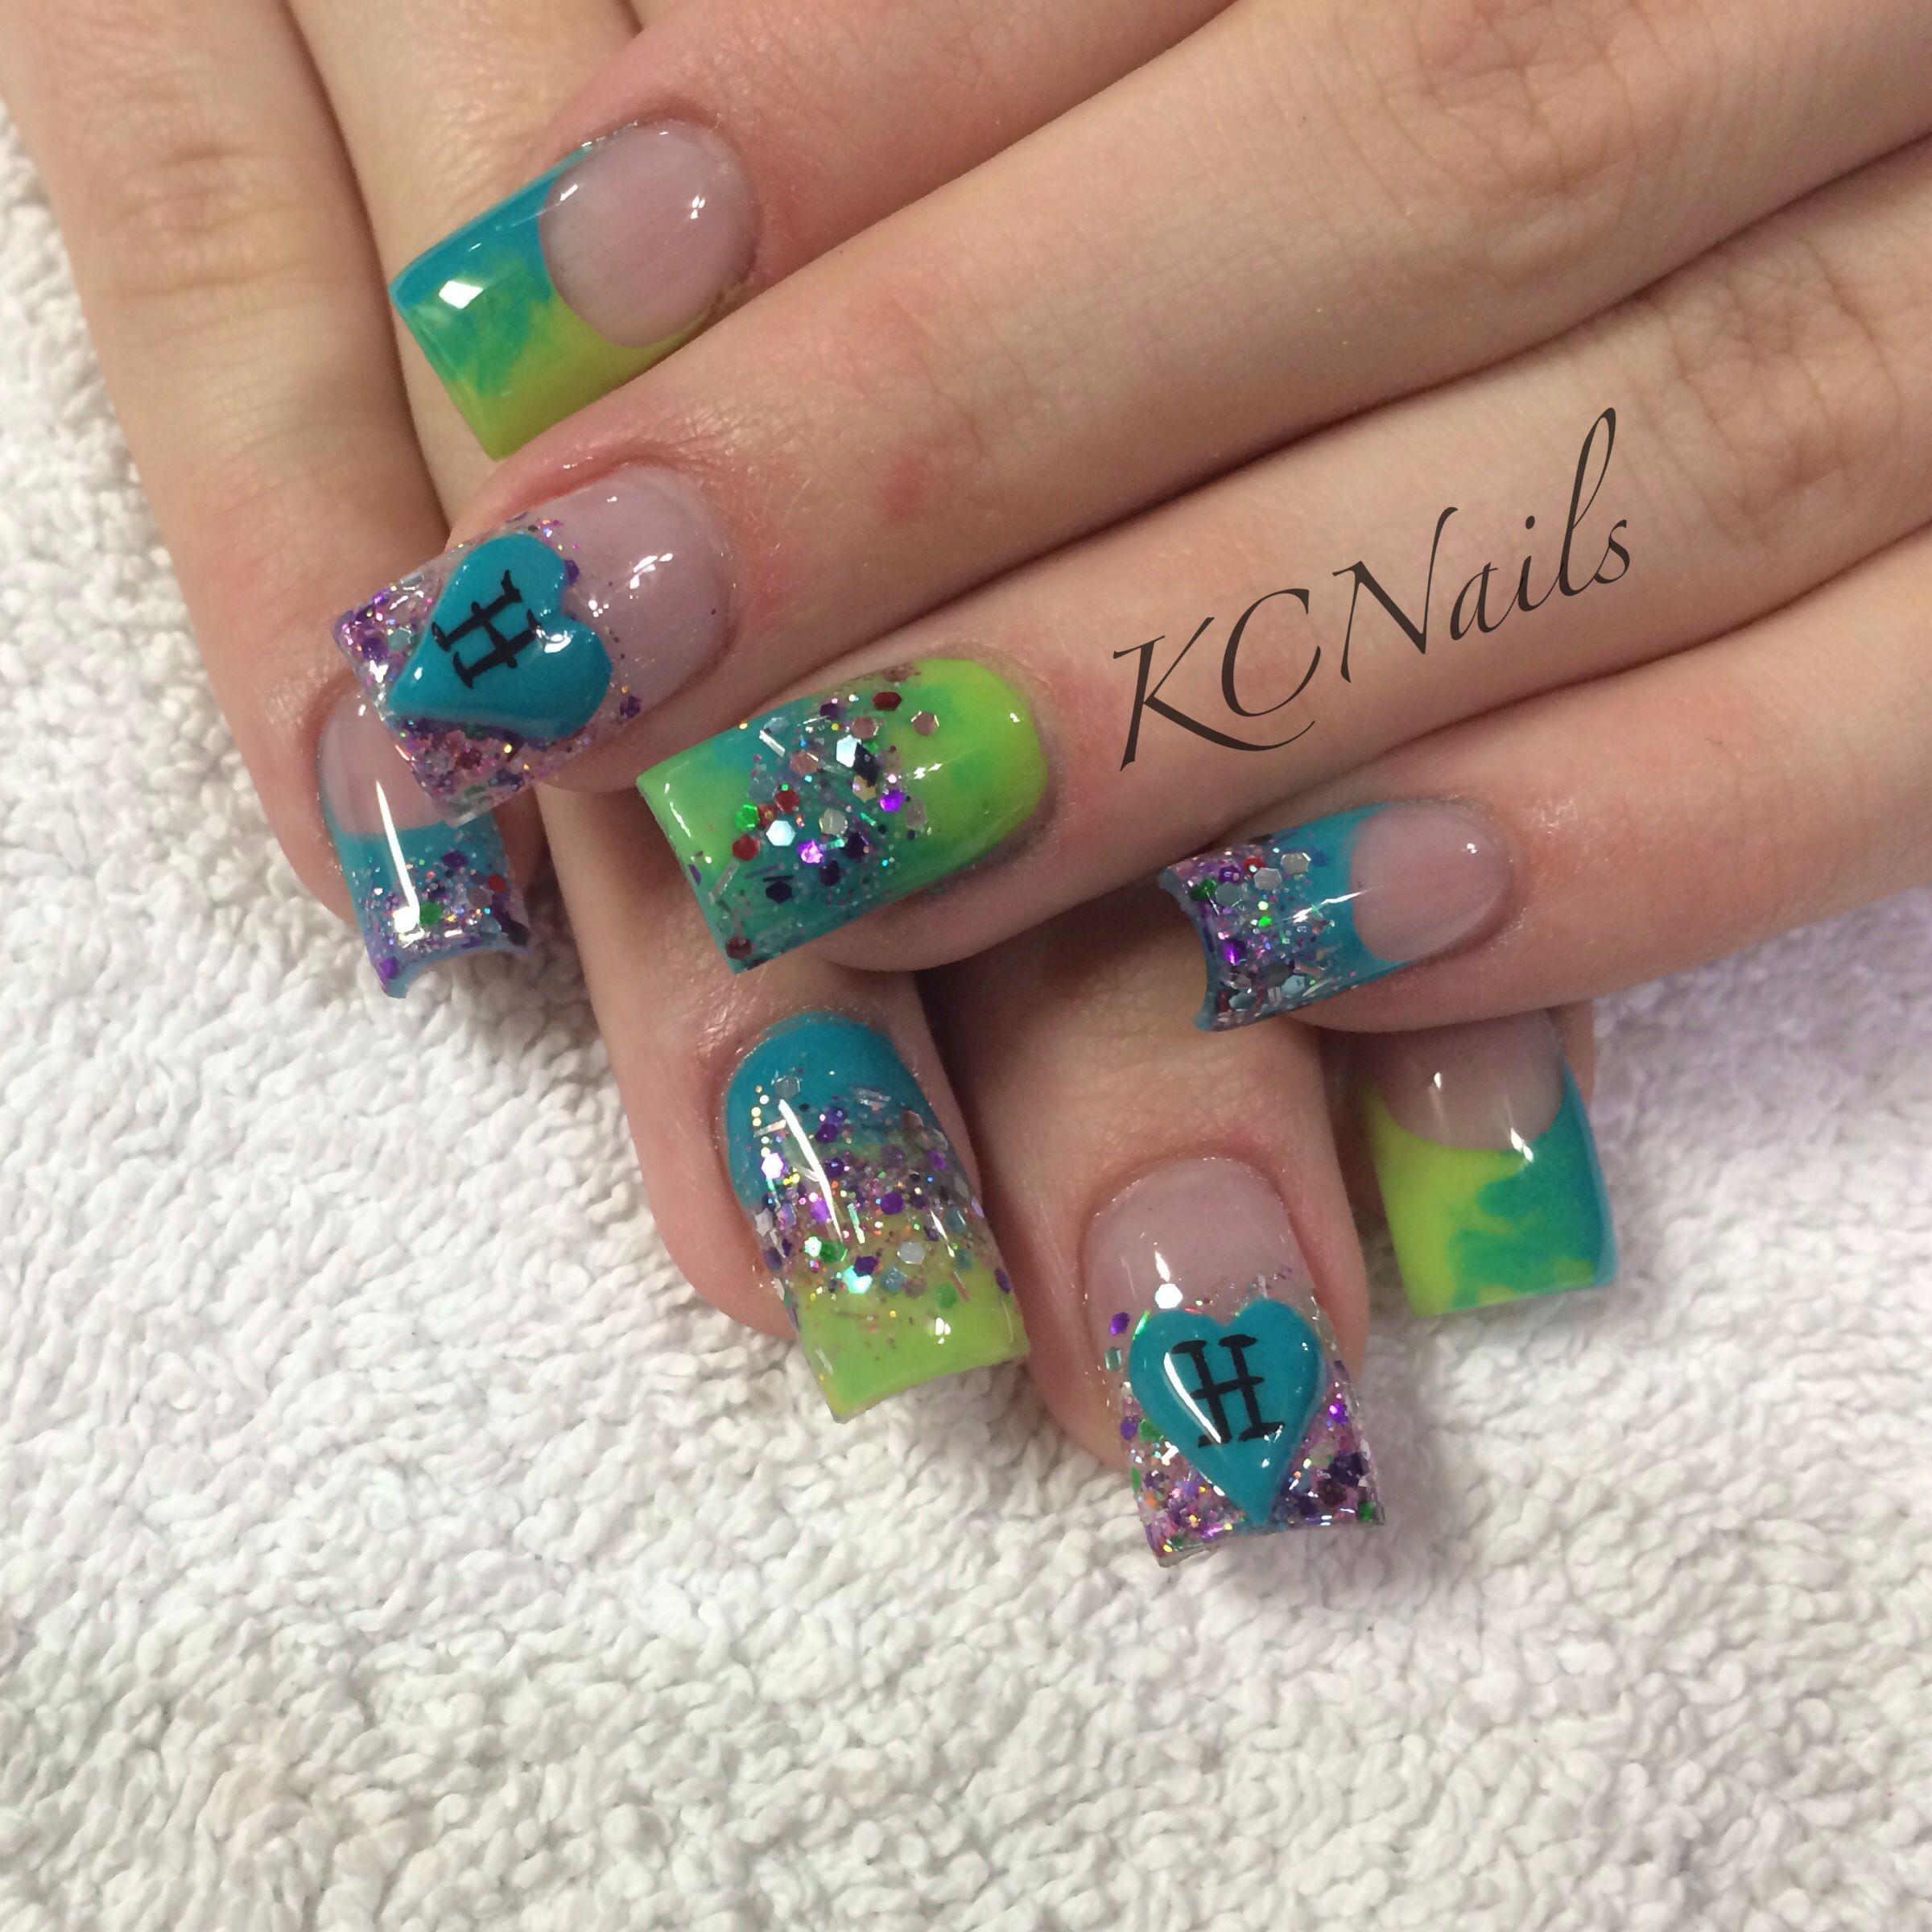 teal and lime green acrylic nails